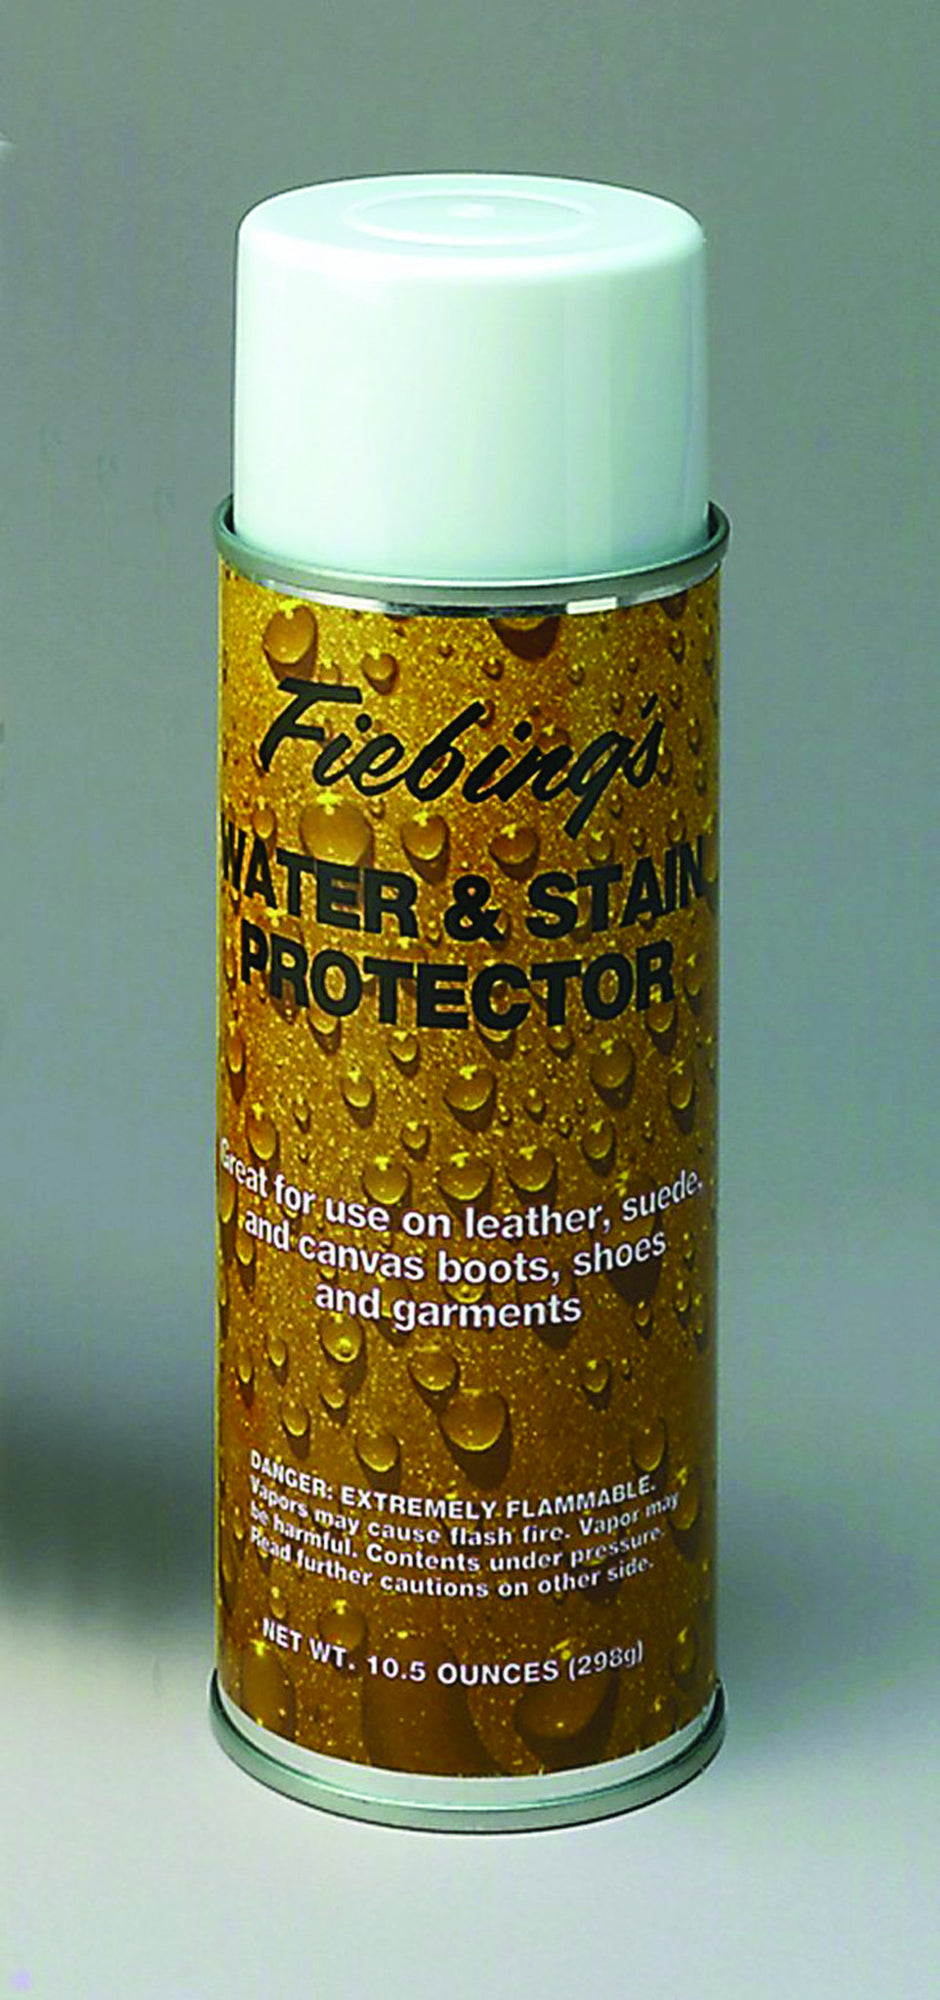 Snow Proof Water & Stain Protector Aerosol